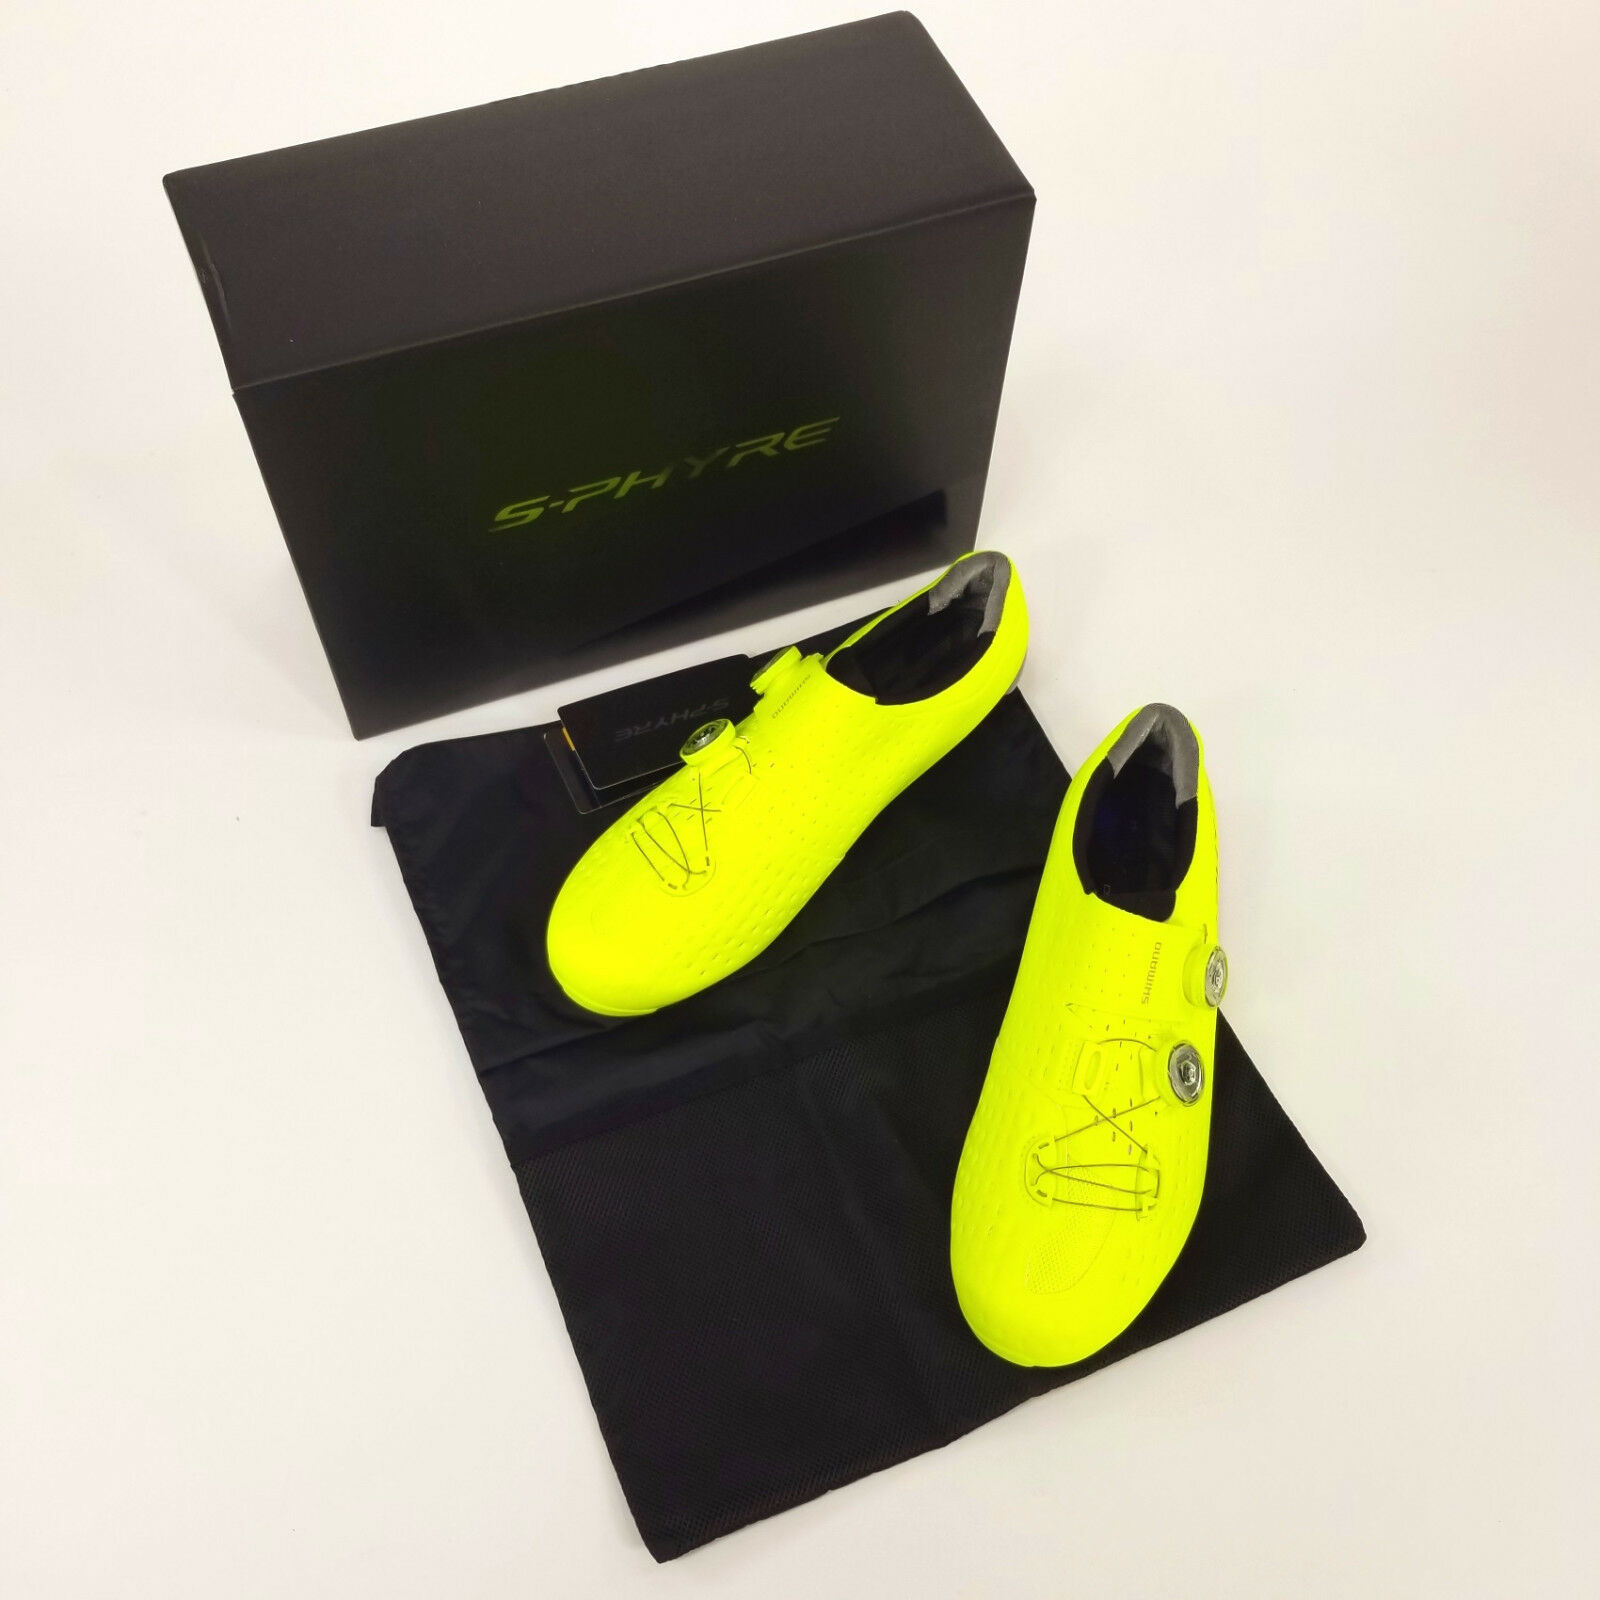 Shimano RC9Y S-Phyre Road Bike shoes, Yellow, US  4.5    simple and generous design